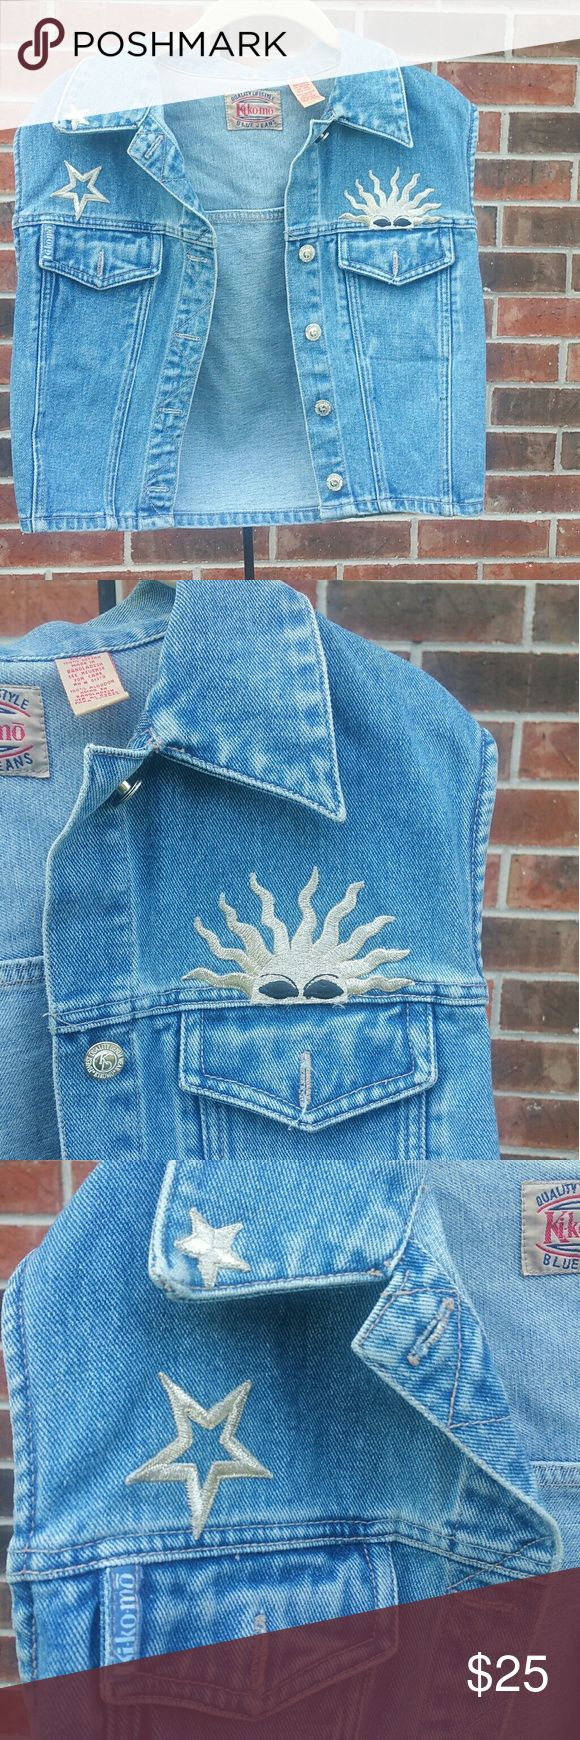 """Ki-Ko-Mo Vintage Blue Jean Medium Crop Denim Vest! Ki-Ko-Mo Vintage Blue Jeans Size Medium Denim Vest In perfect condition :)  100% Cotton Denim Embellished with Setting Sun and Stars Button-up Front and Two Pockets  Approximate Measurements (garment lying flat):  Across Chest: 15.5"""", Across Bottom: 16"""",  Length (from nape): 18""""  Let me know if you have any questions! Ki-Ko-Mo Jackets & Coats Jean Jackets"""